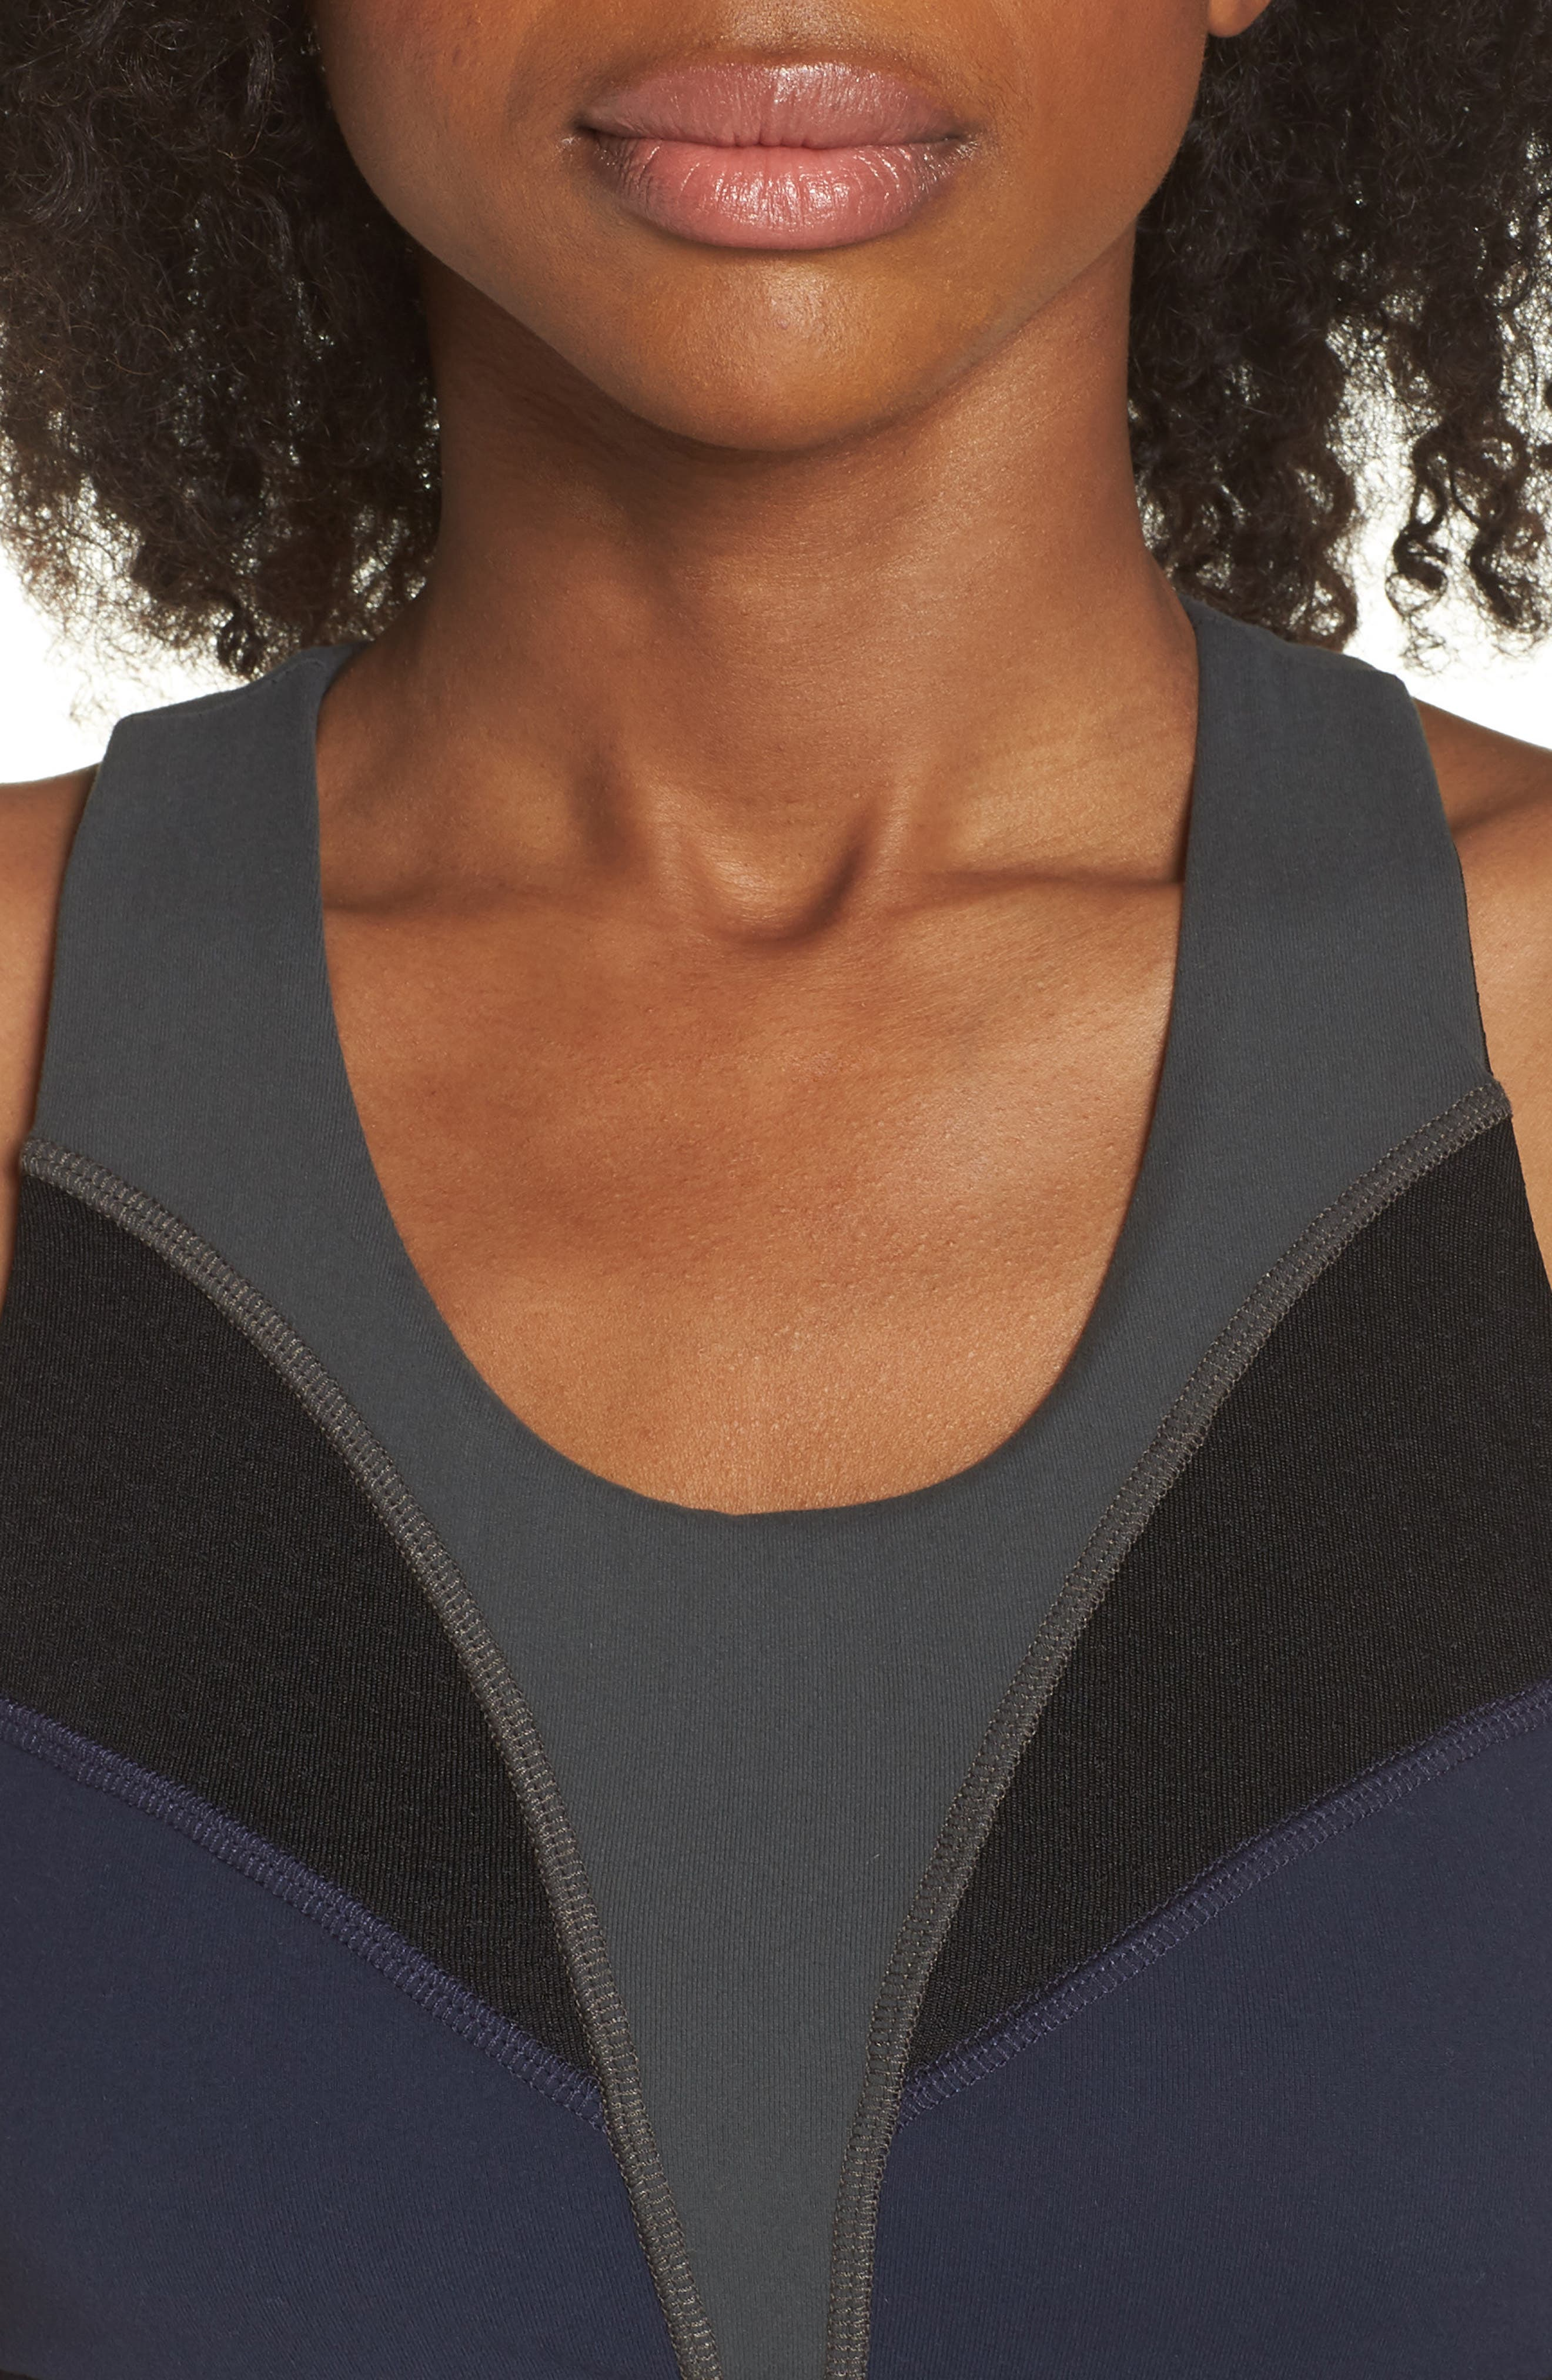 BoomBoom Athletica Brushed Tricolor Bra,                             Alternate thumbnail 4, color,                             Navy/ Black/ Green